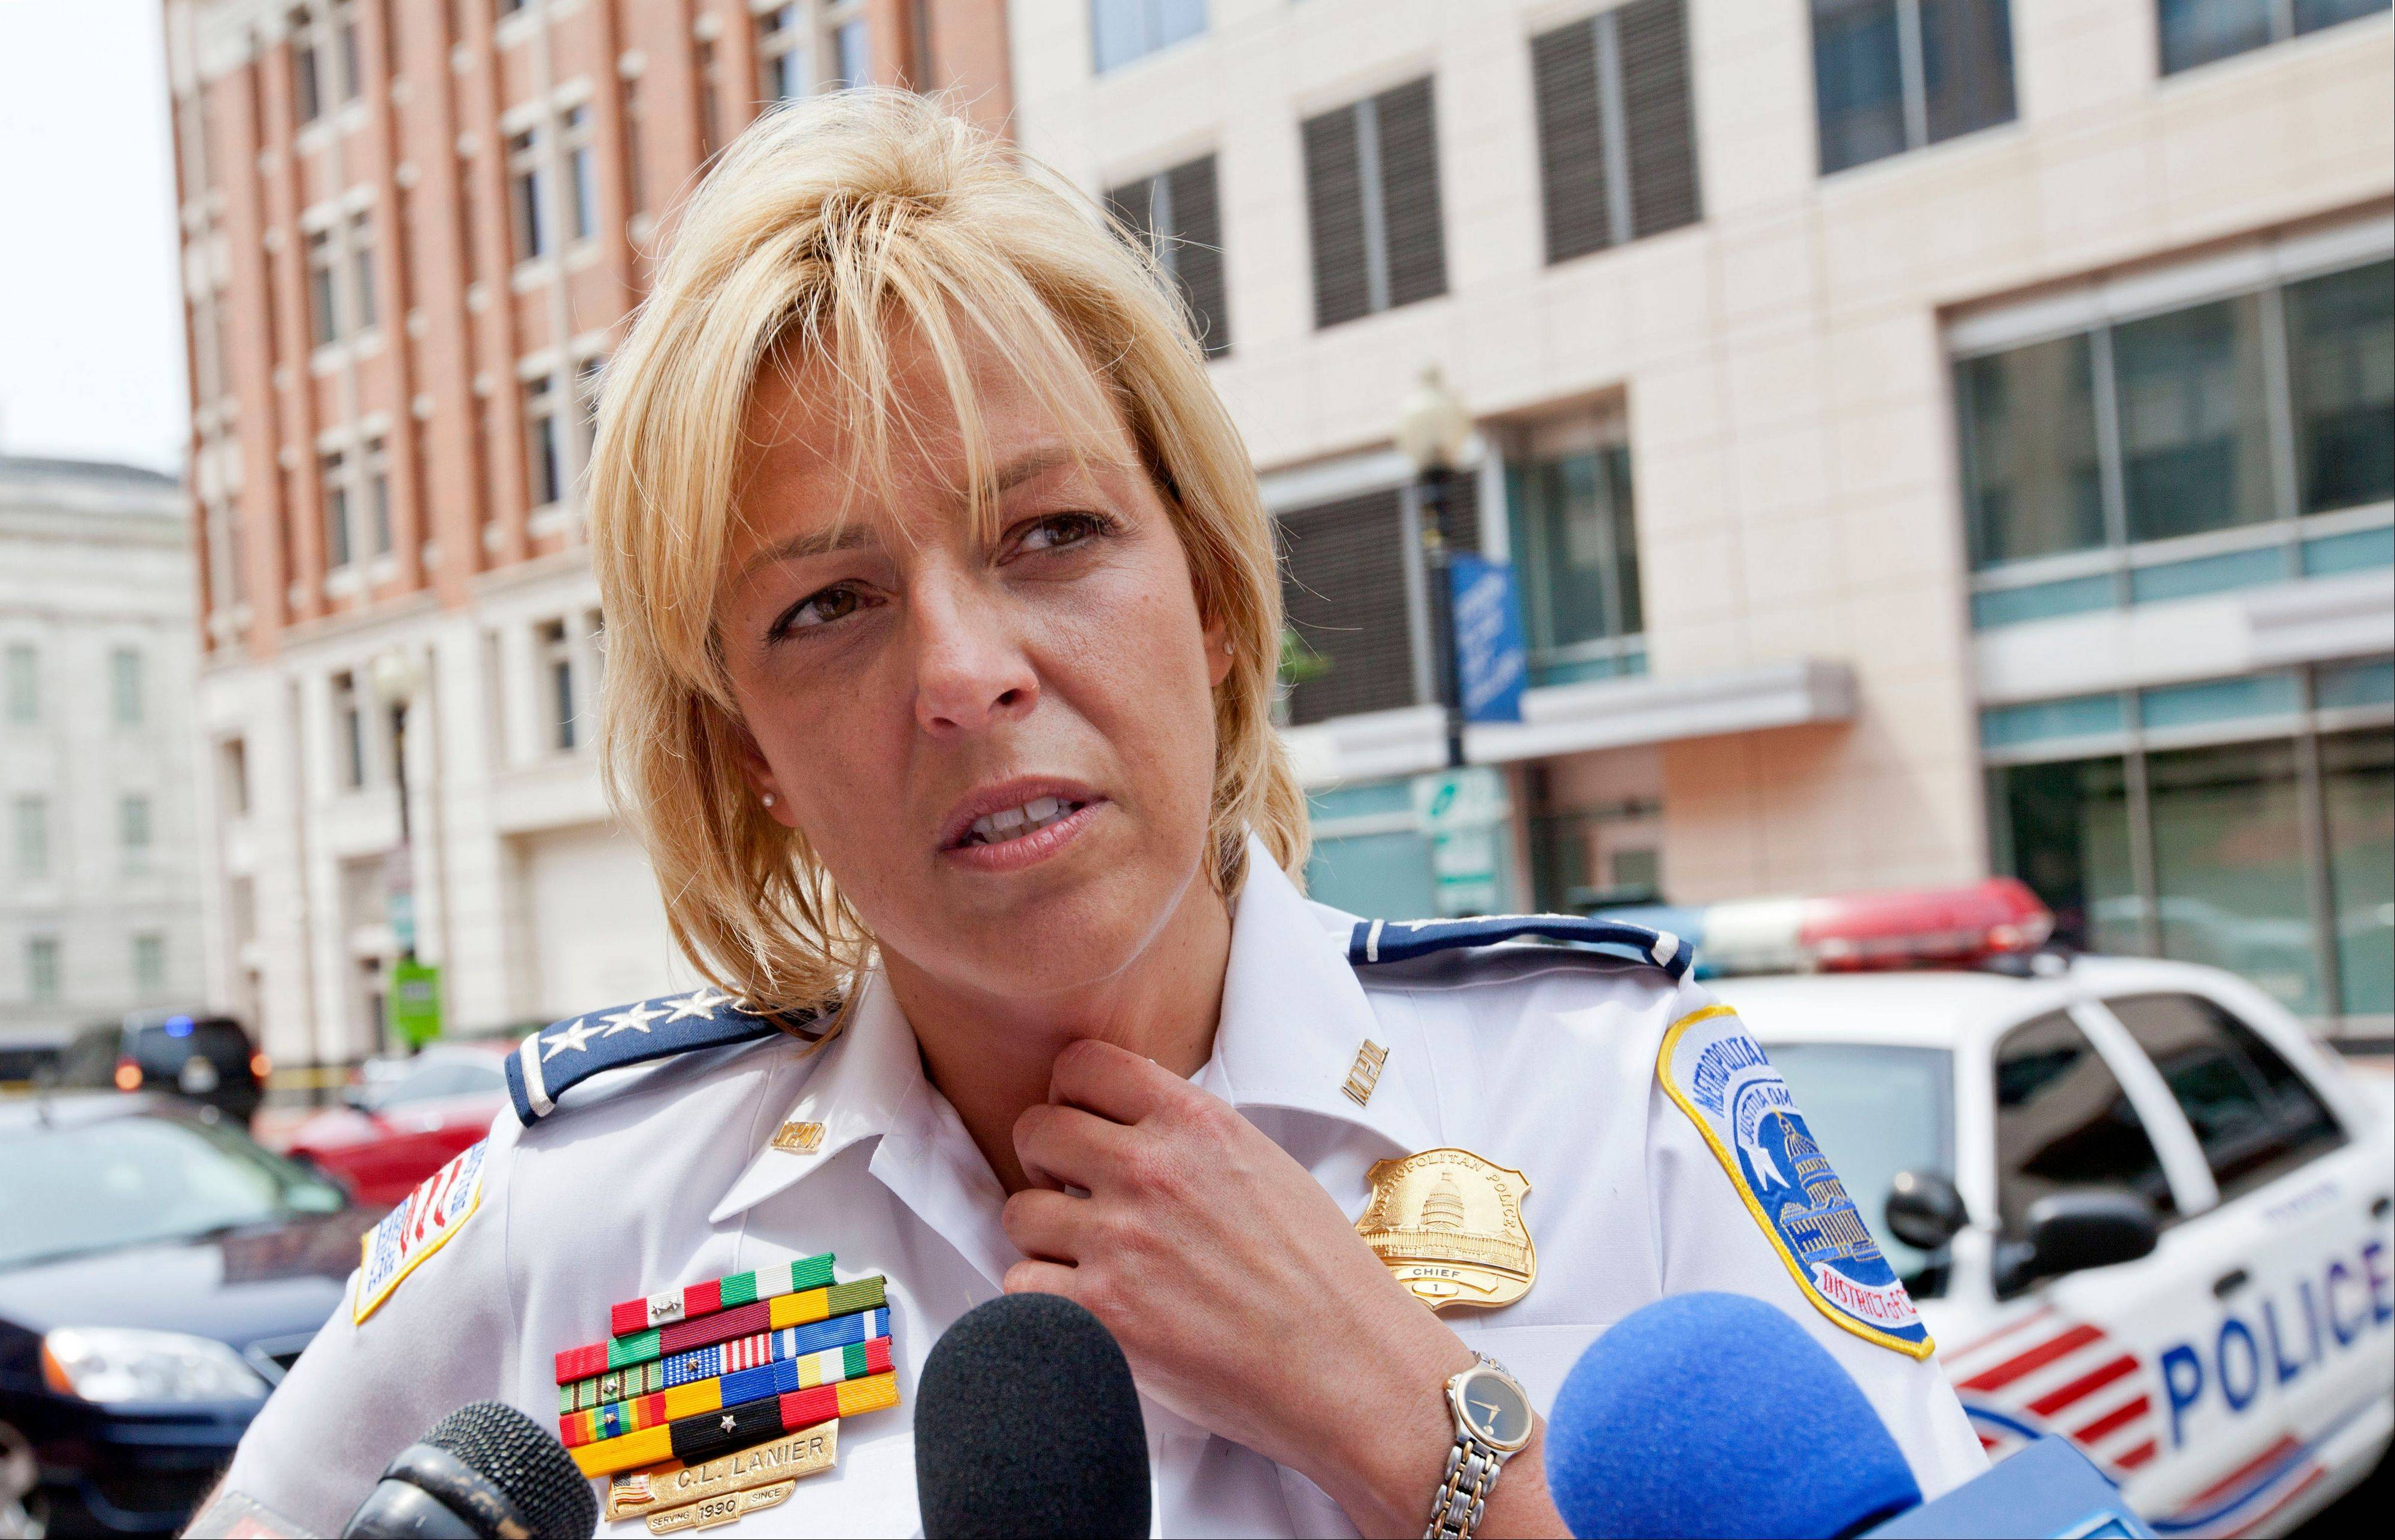 Washington Police Chief Cathy Lanier meets with reporters near the Family Research Council in Washington, Wednesday, Aug. 15, 2012, after a security guard for the lobbying group was shot in the arm.